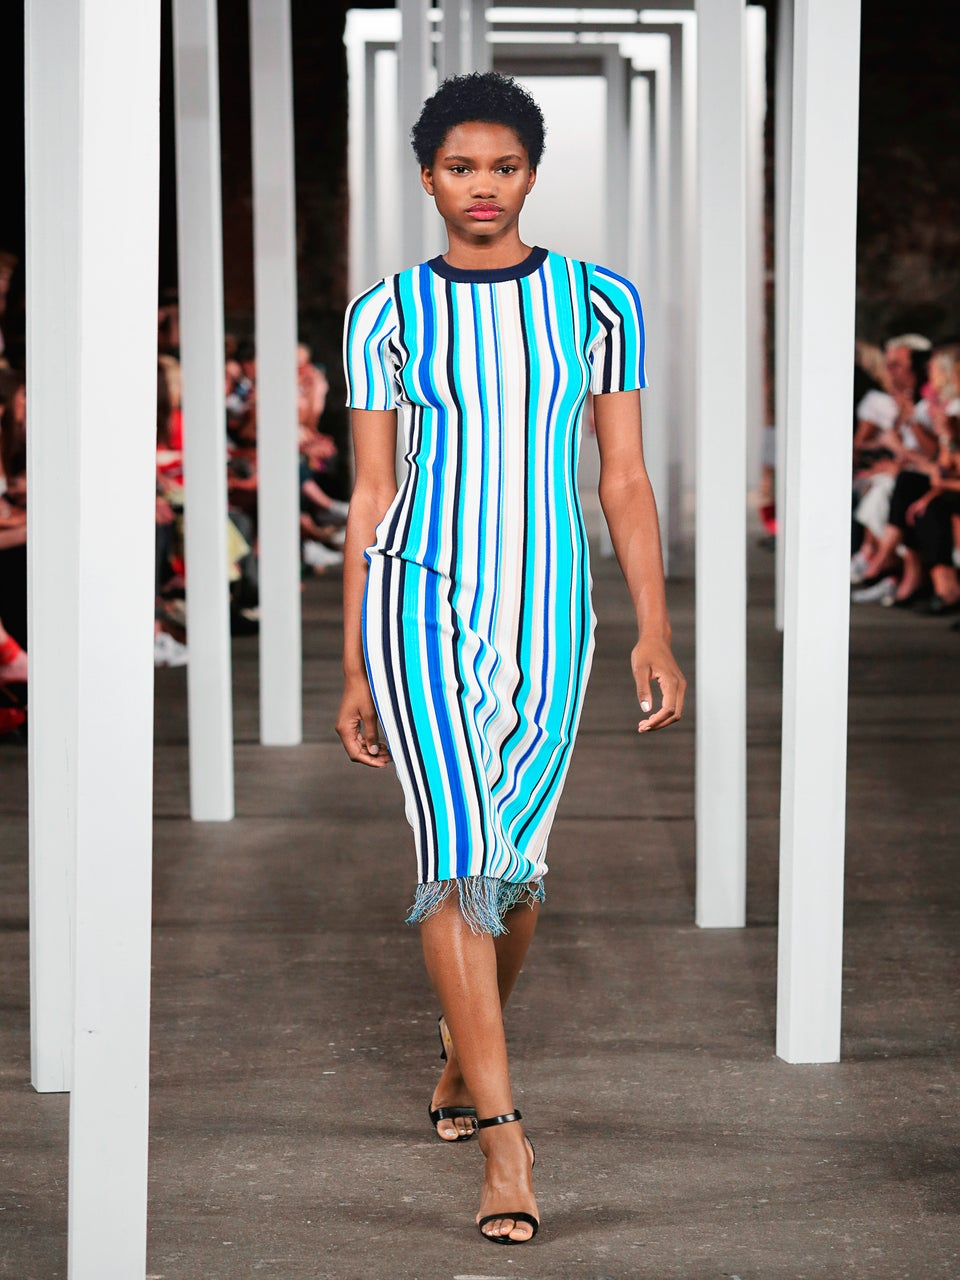 Spring Stunners: Take Your Spring Wardrobe to the Next Level With These Fresh Stripes